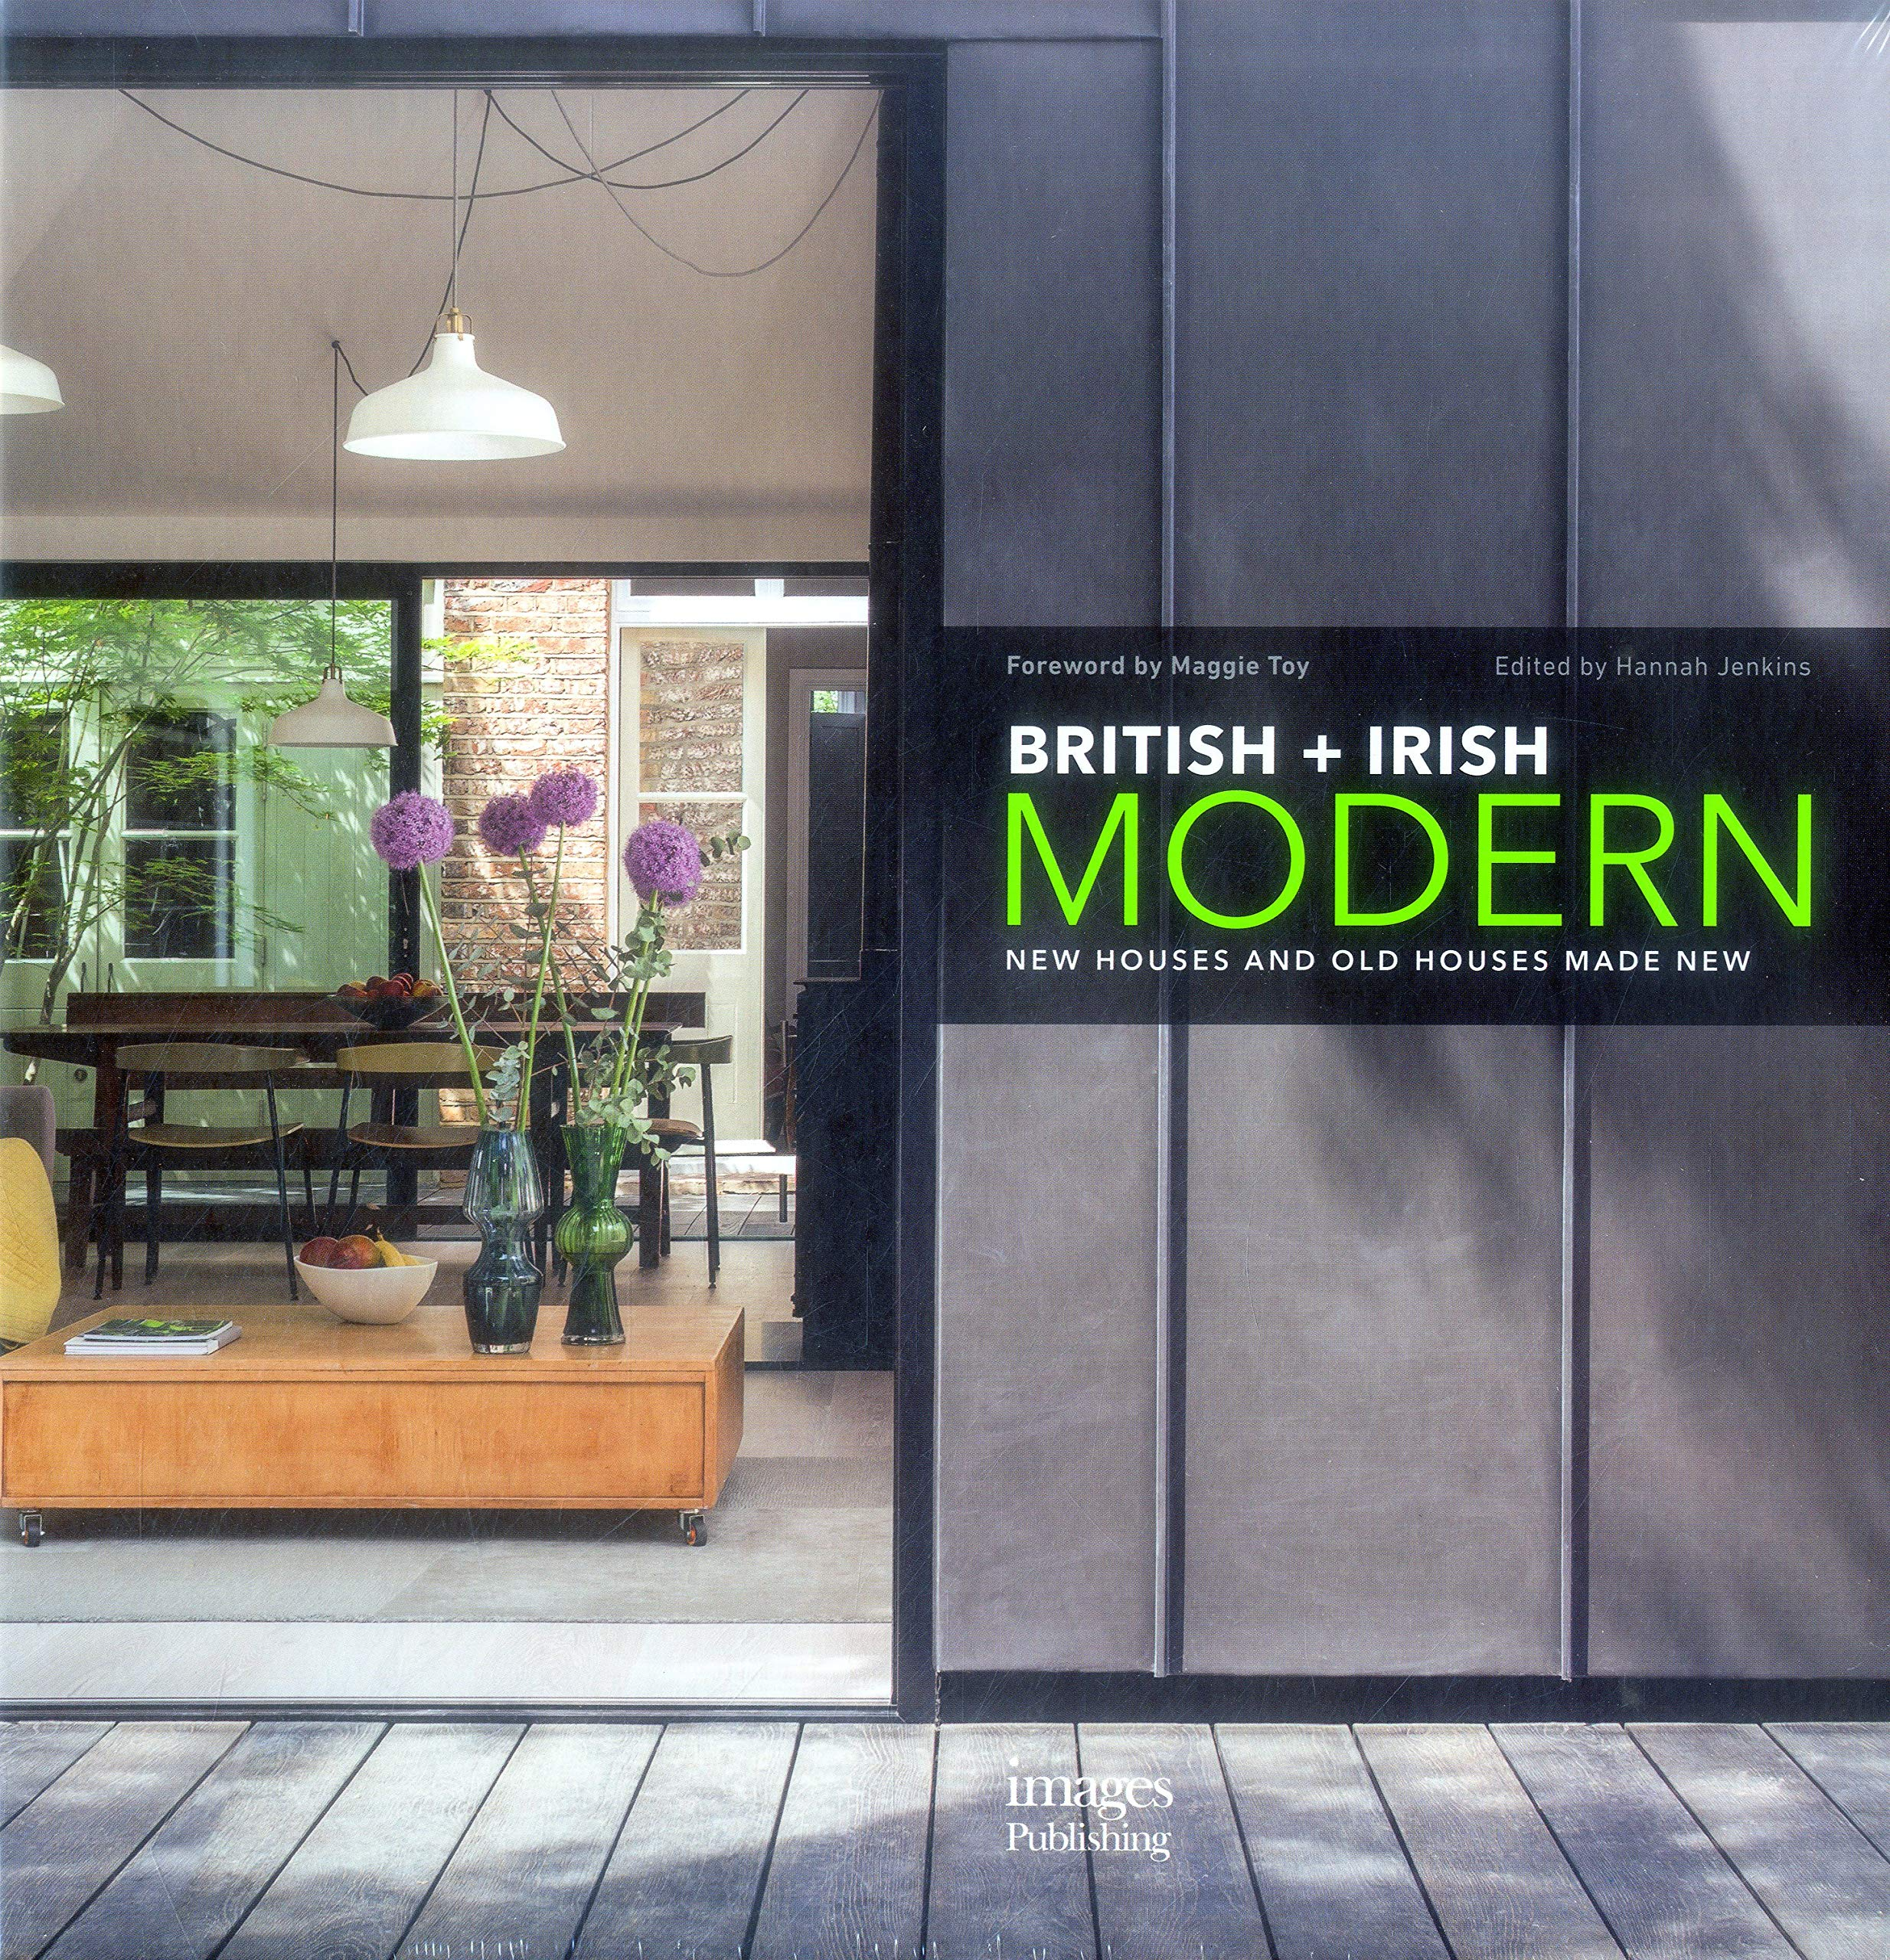 Amazing British + Irish Modern: New Houses And Old Houses Made New: Amazon.co.uk:  Edited By Hannah Jenkins, Foreword By Maggie Toy: 9781864707533: Books